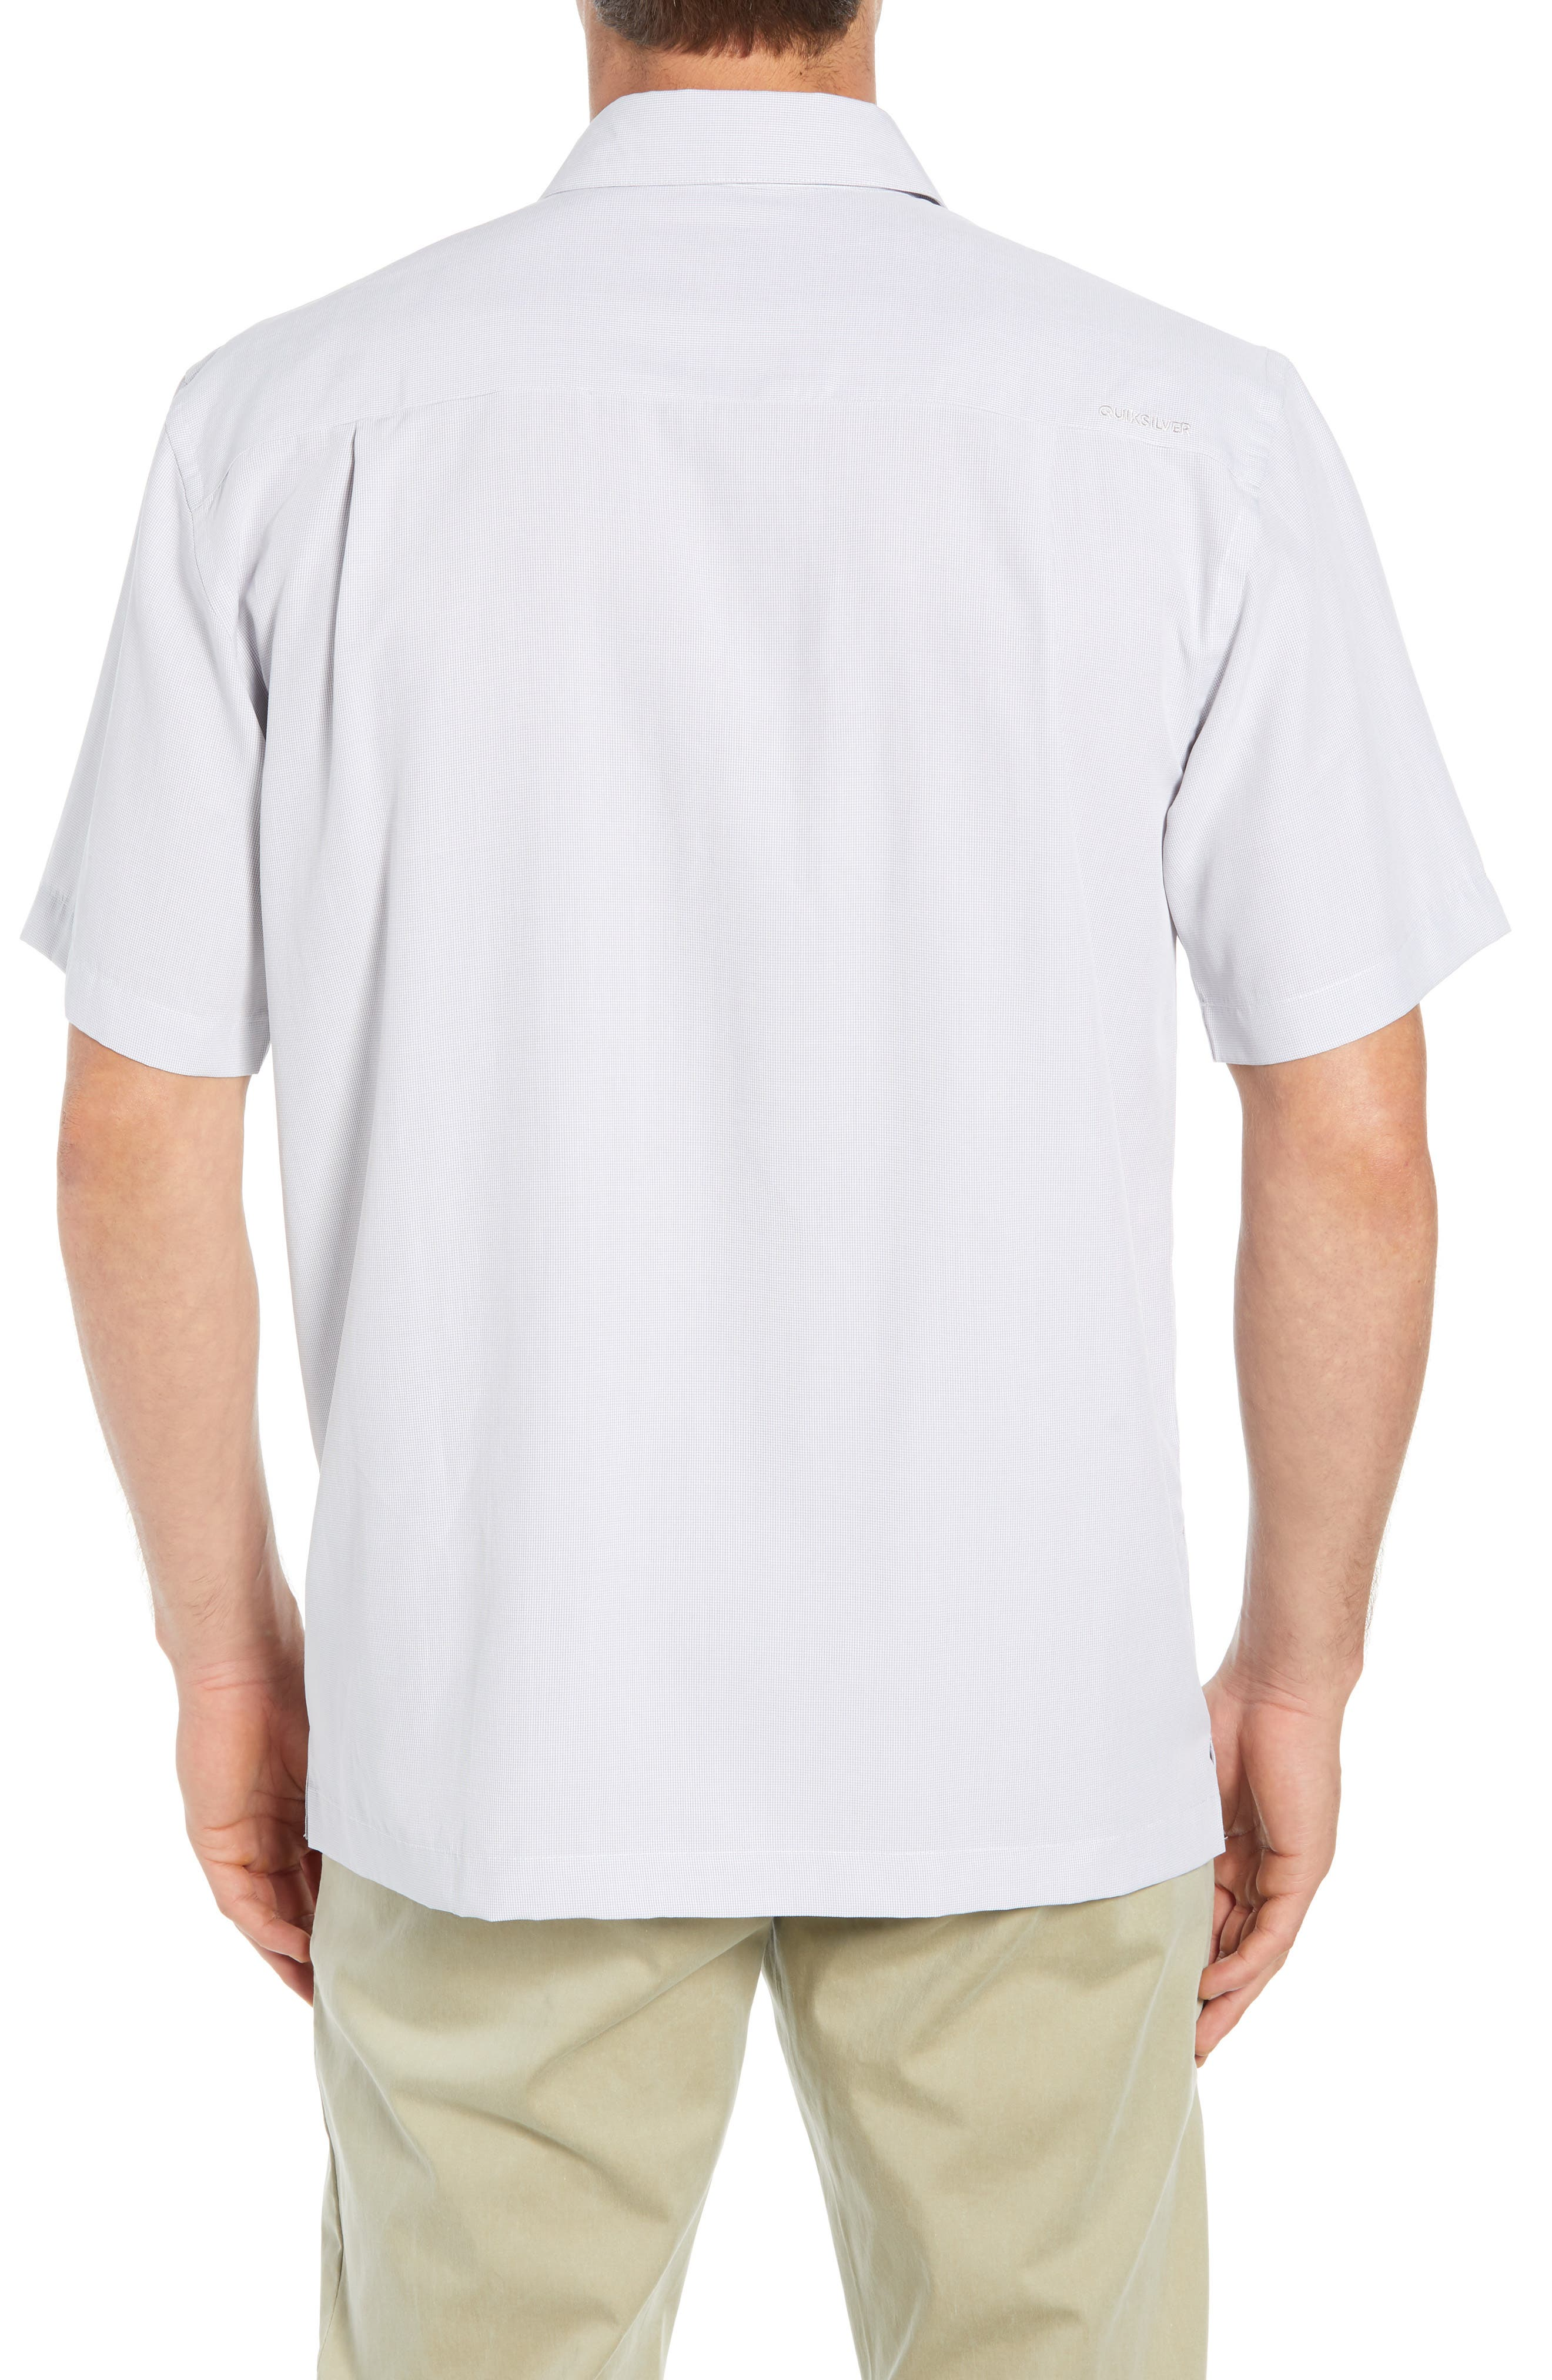 Cane Island Classic Fit Camp Shirt,                             Alternate thumbnail 3, color,                             101